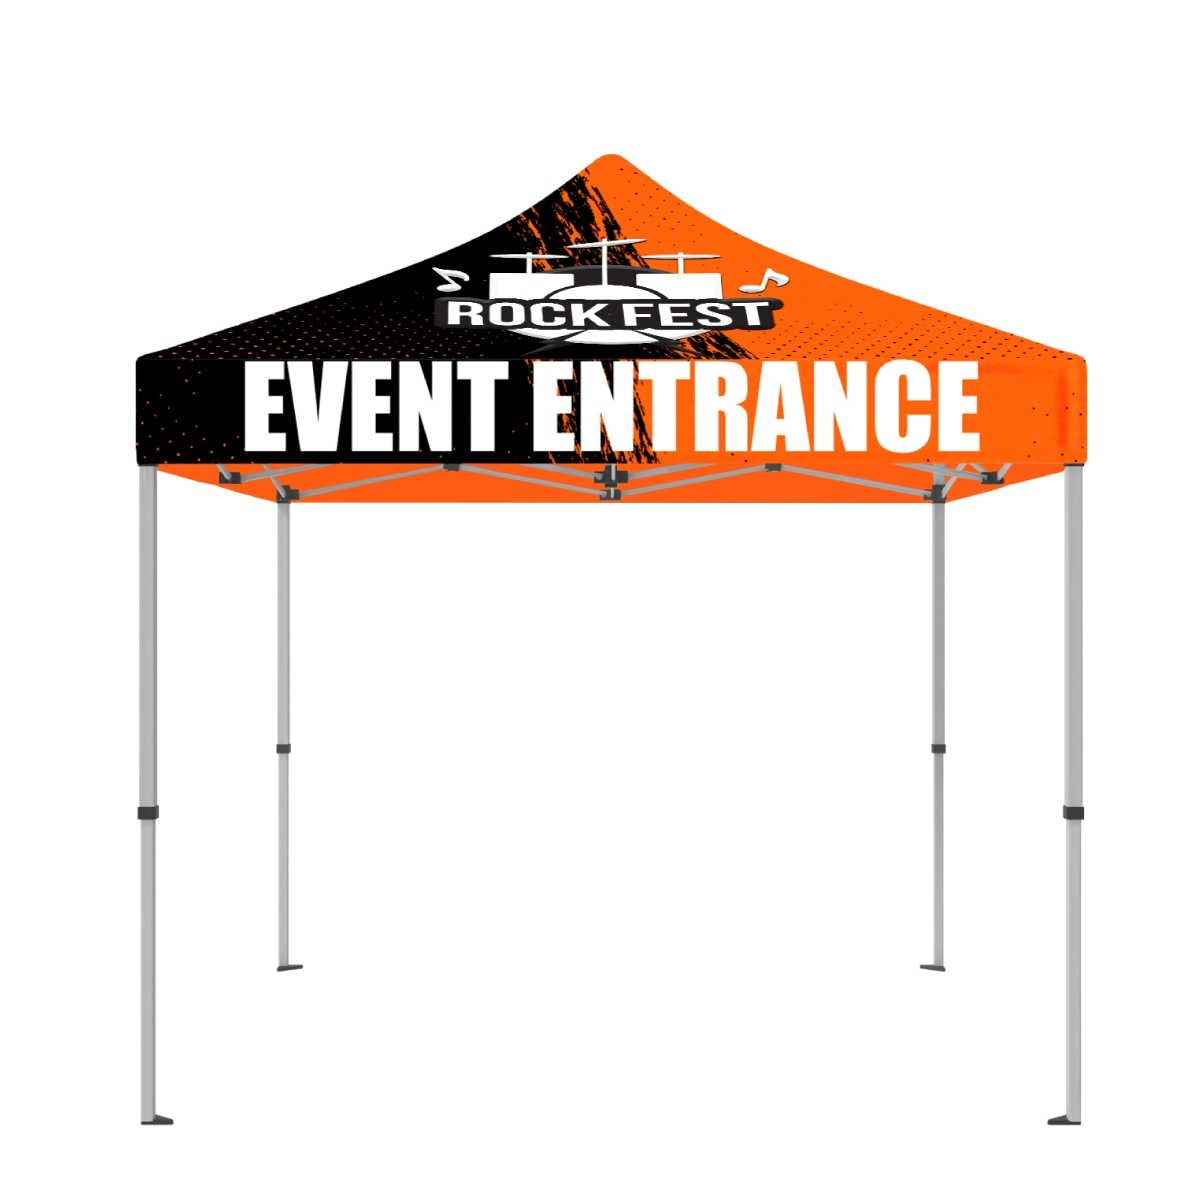 10 x 10 ft. Tent Full-Color Canopy with 50mm Aluminum Frame